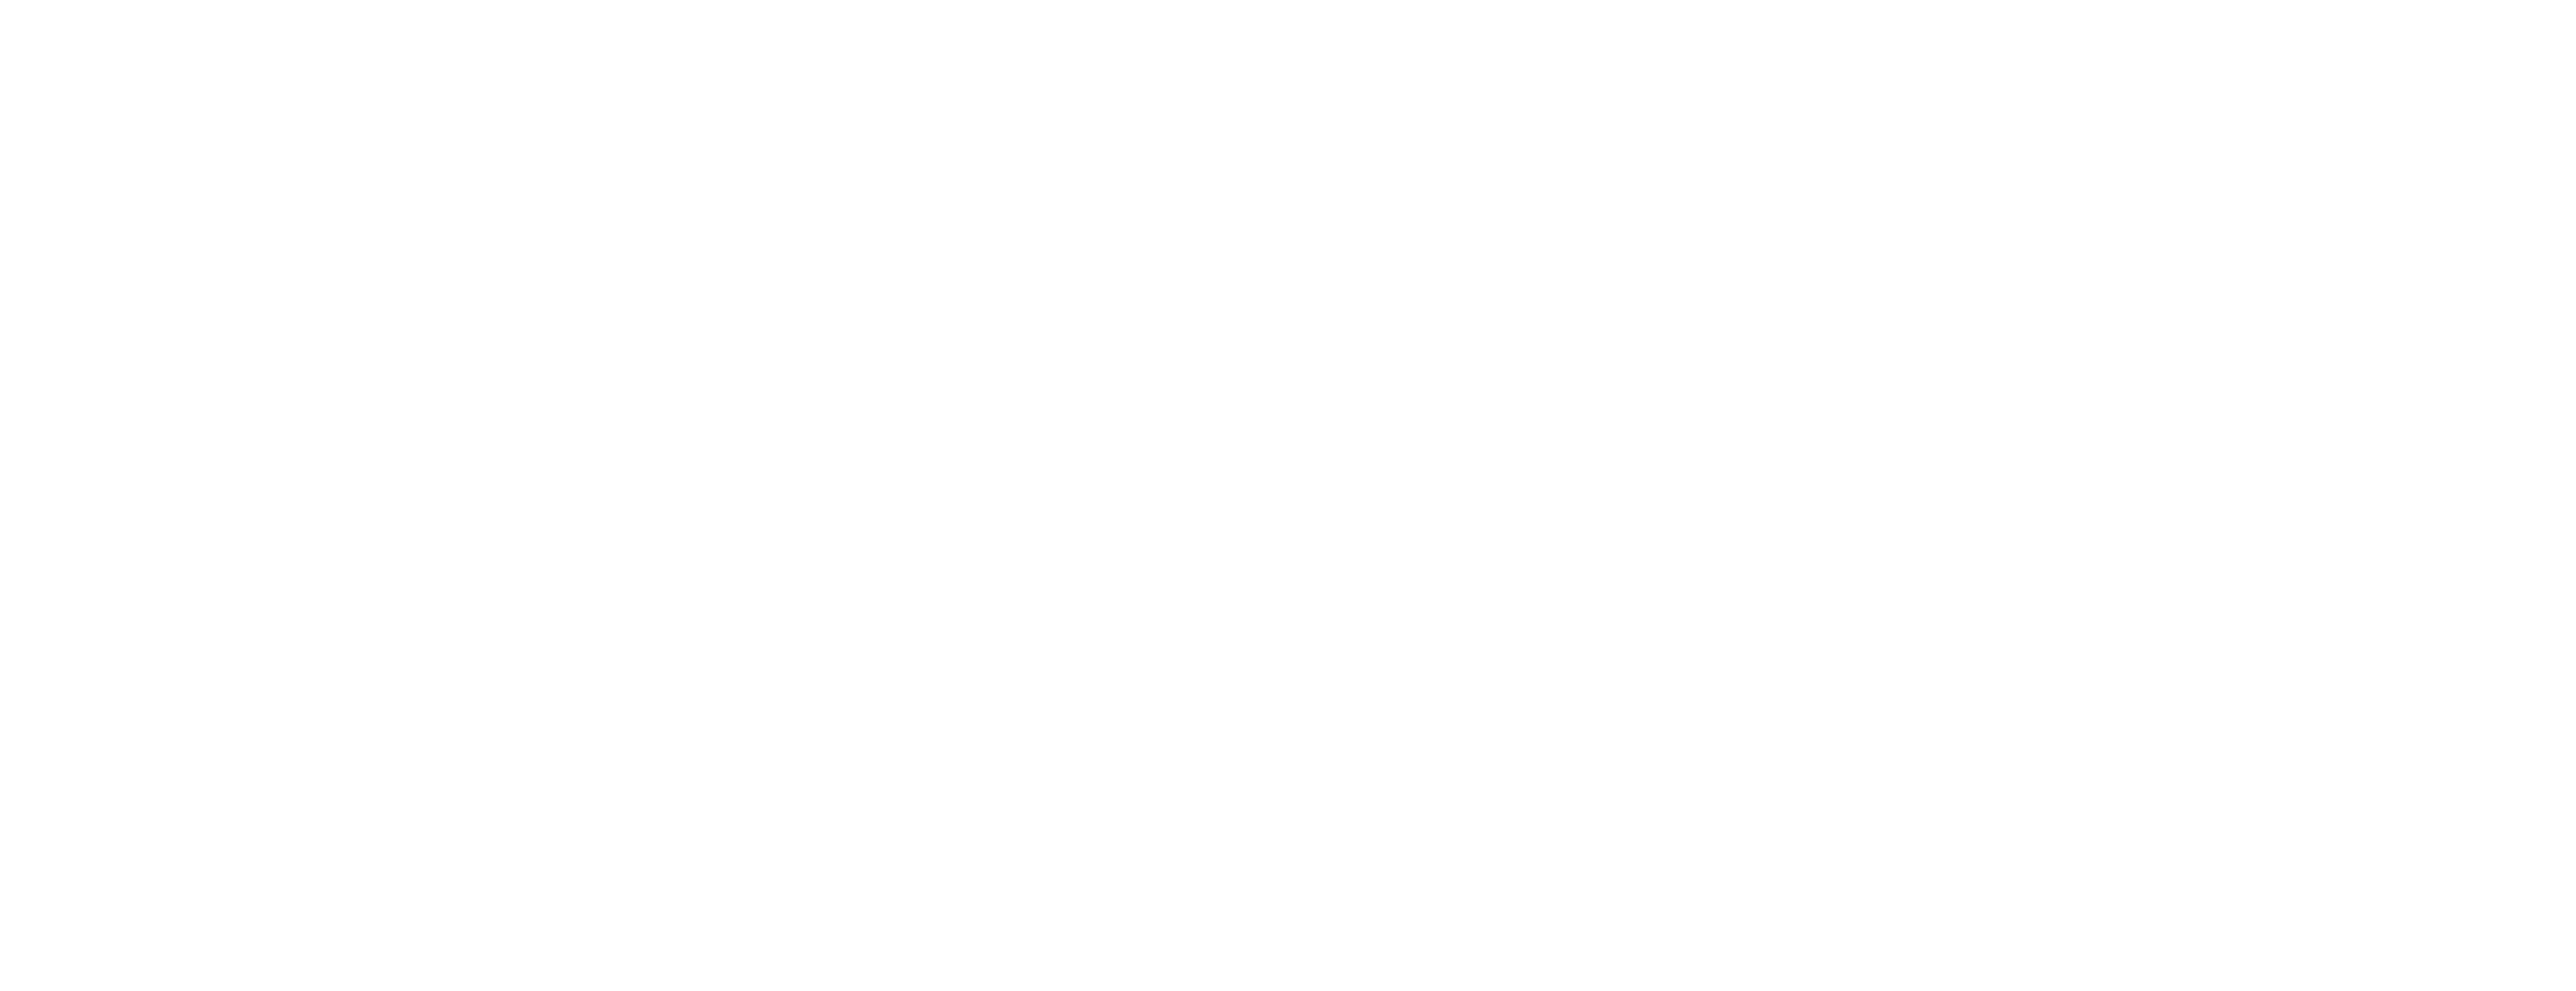 Barstow Commons